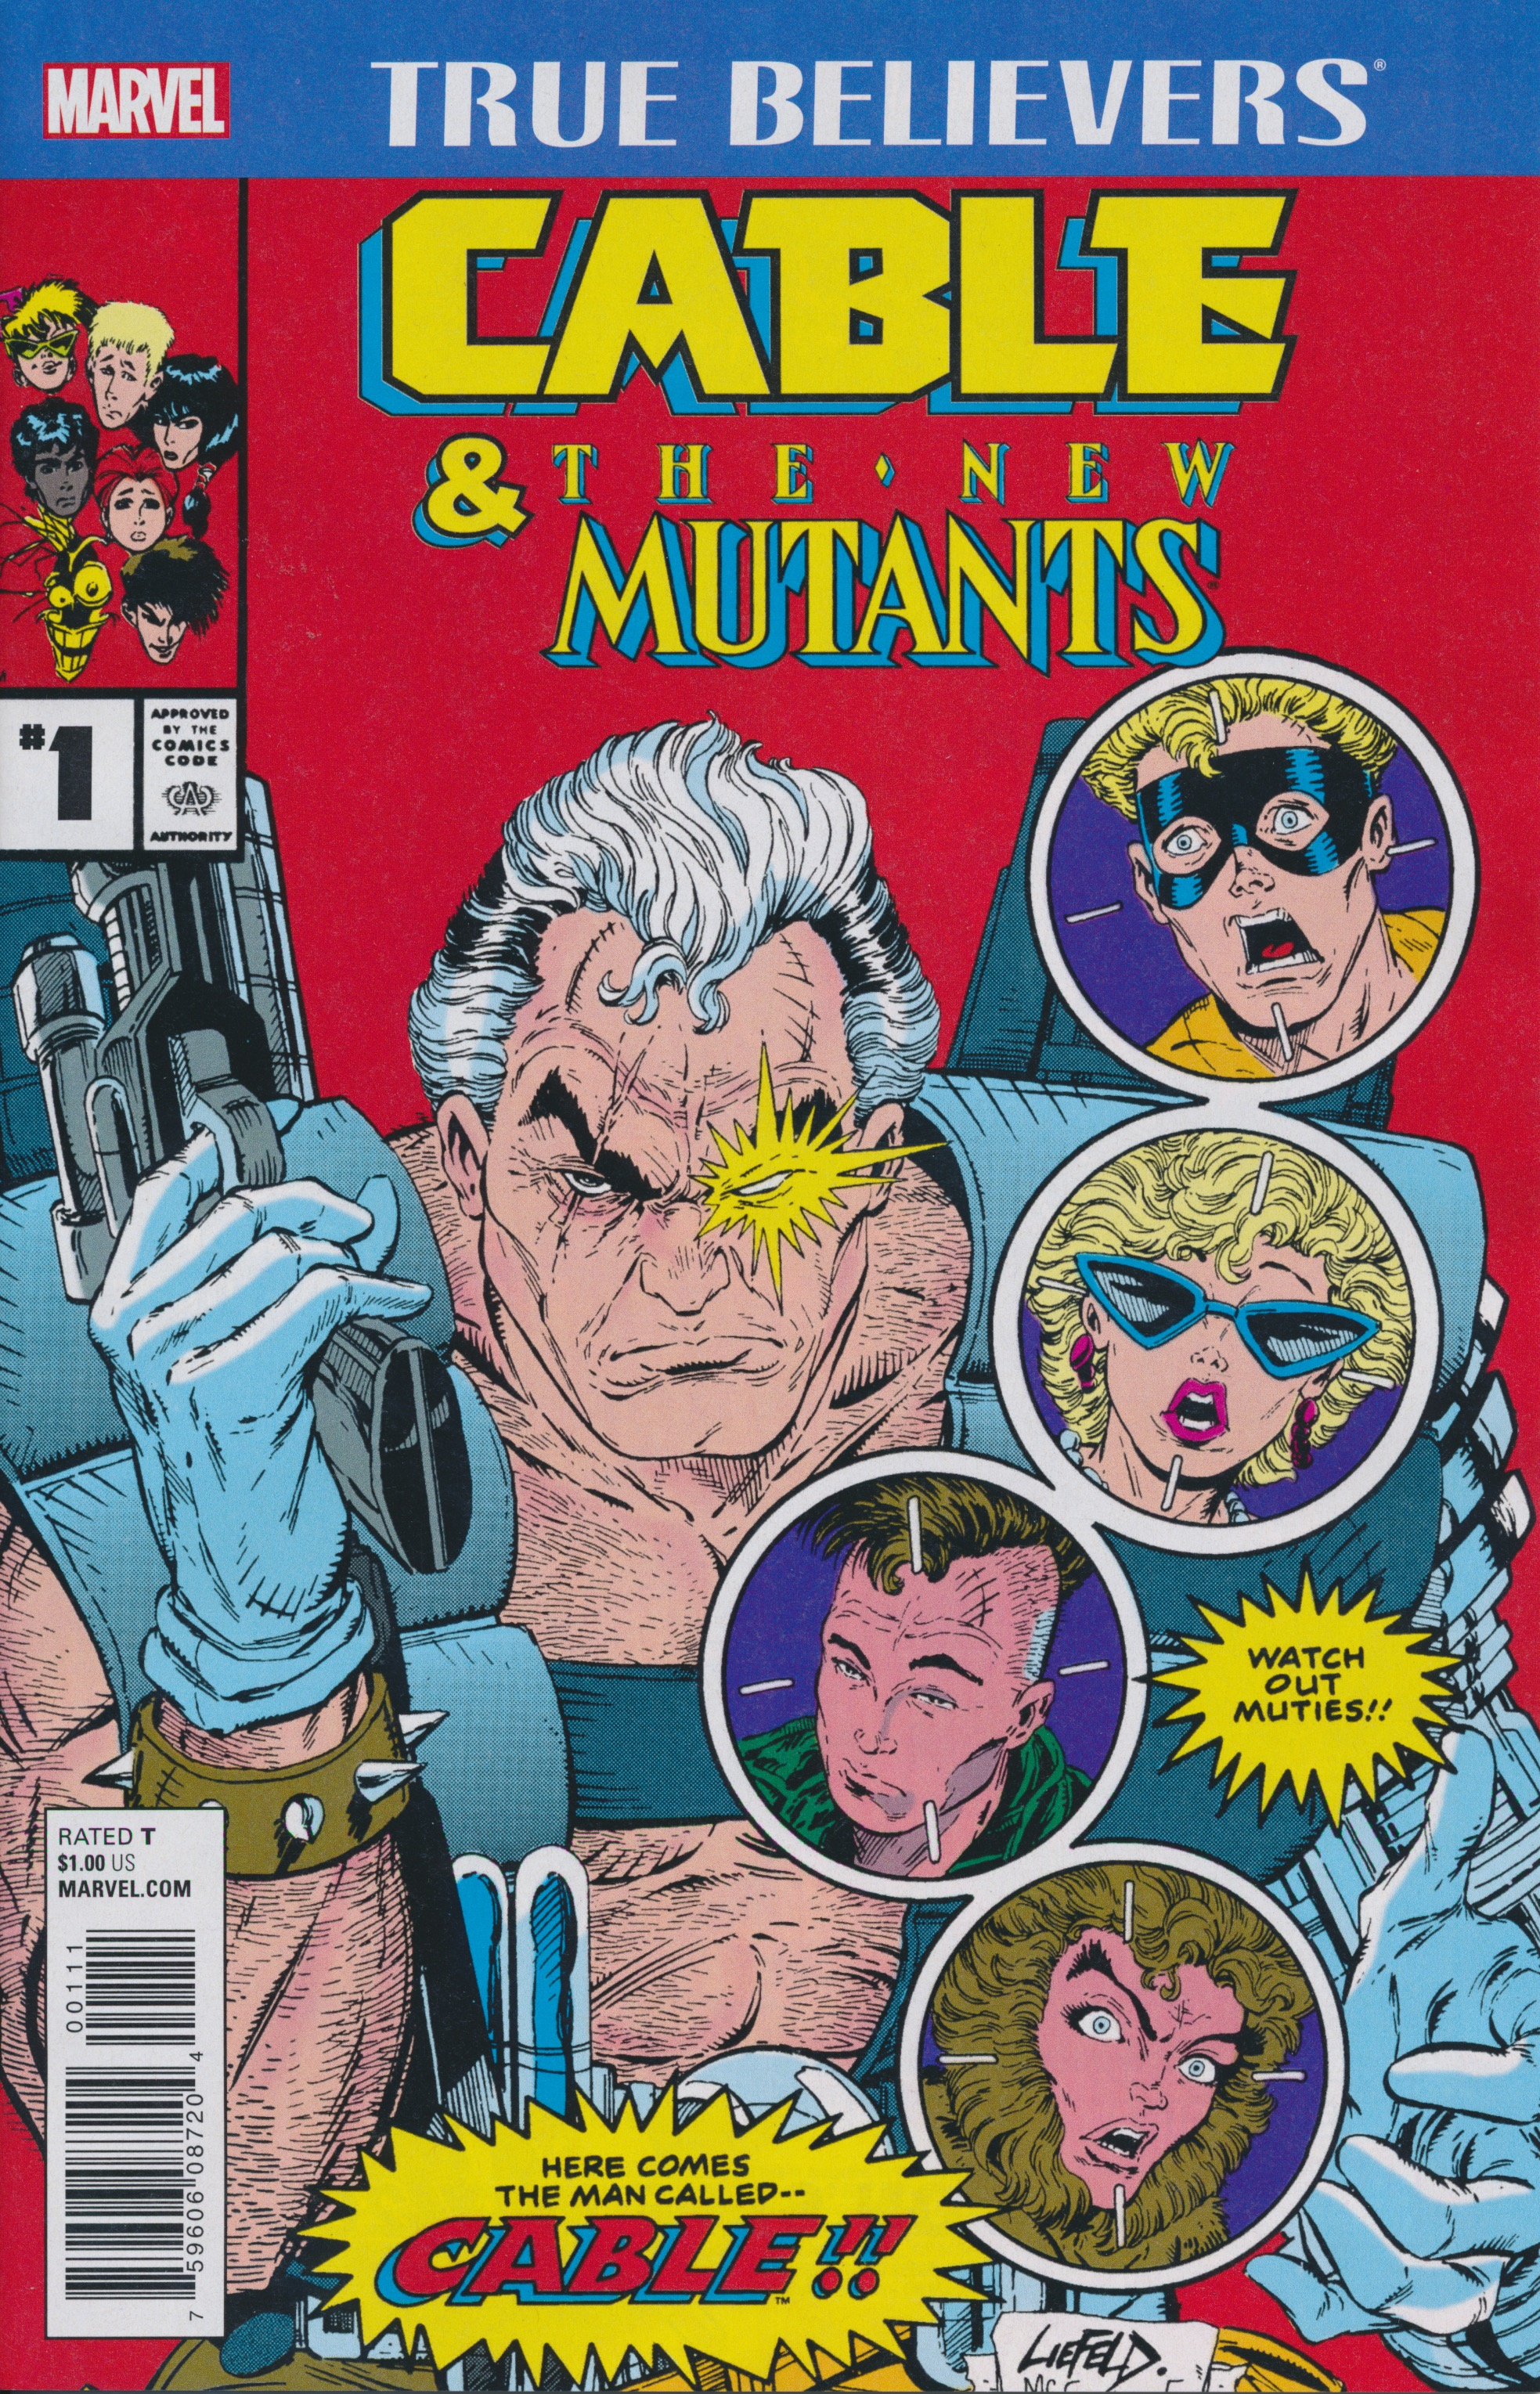 True Believers: Cable & the New Mutants Vol 1